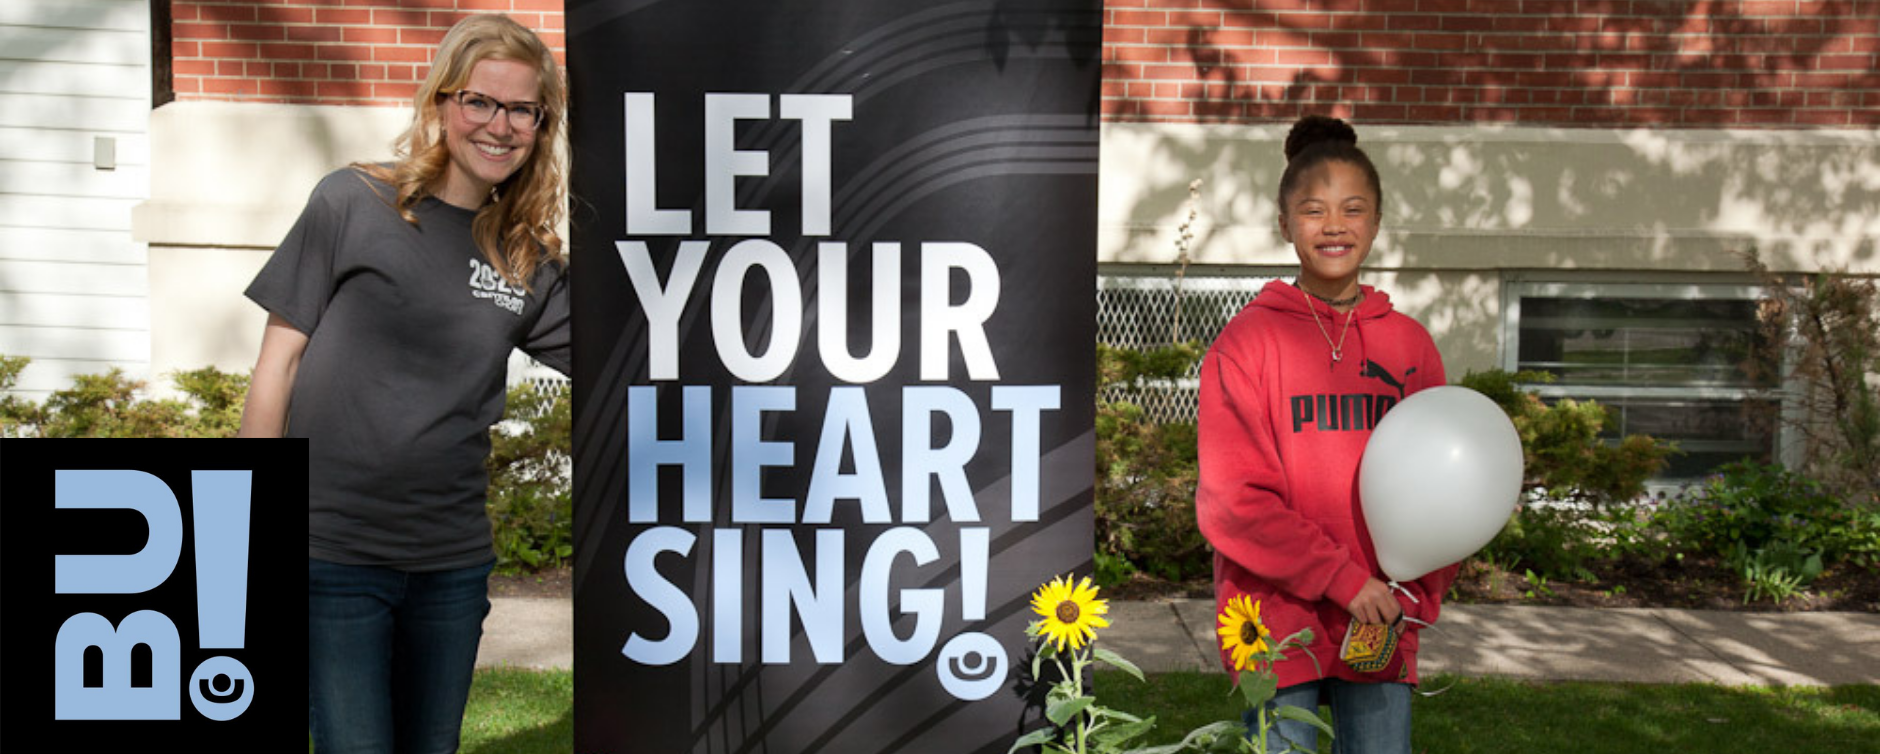 Support Cantilon Choirs and let a child's heart sing.